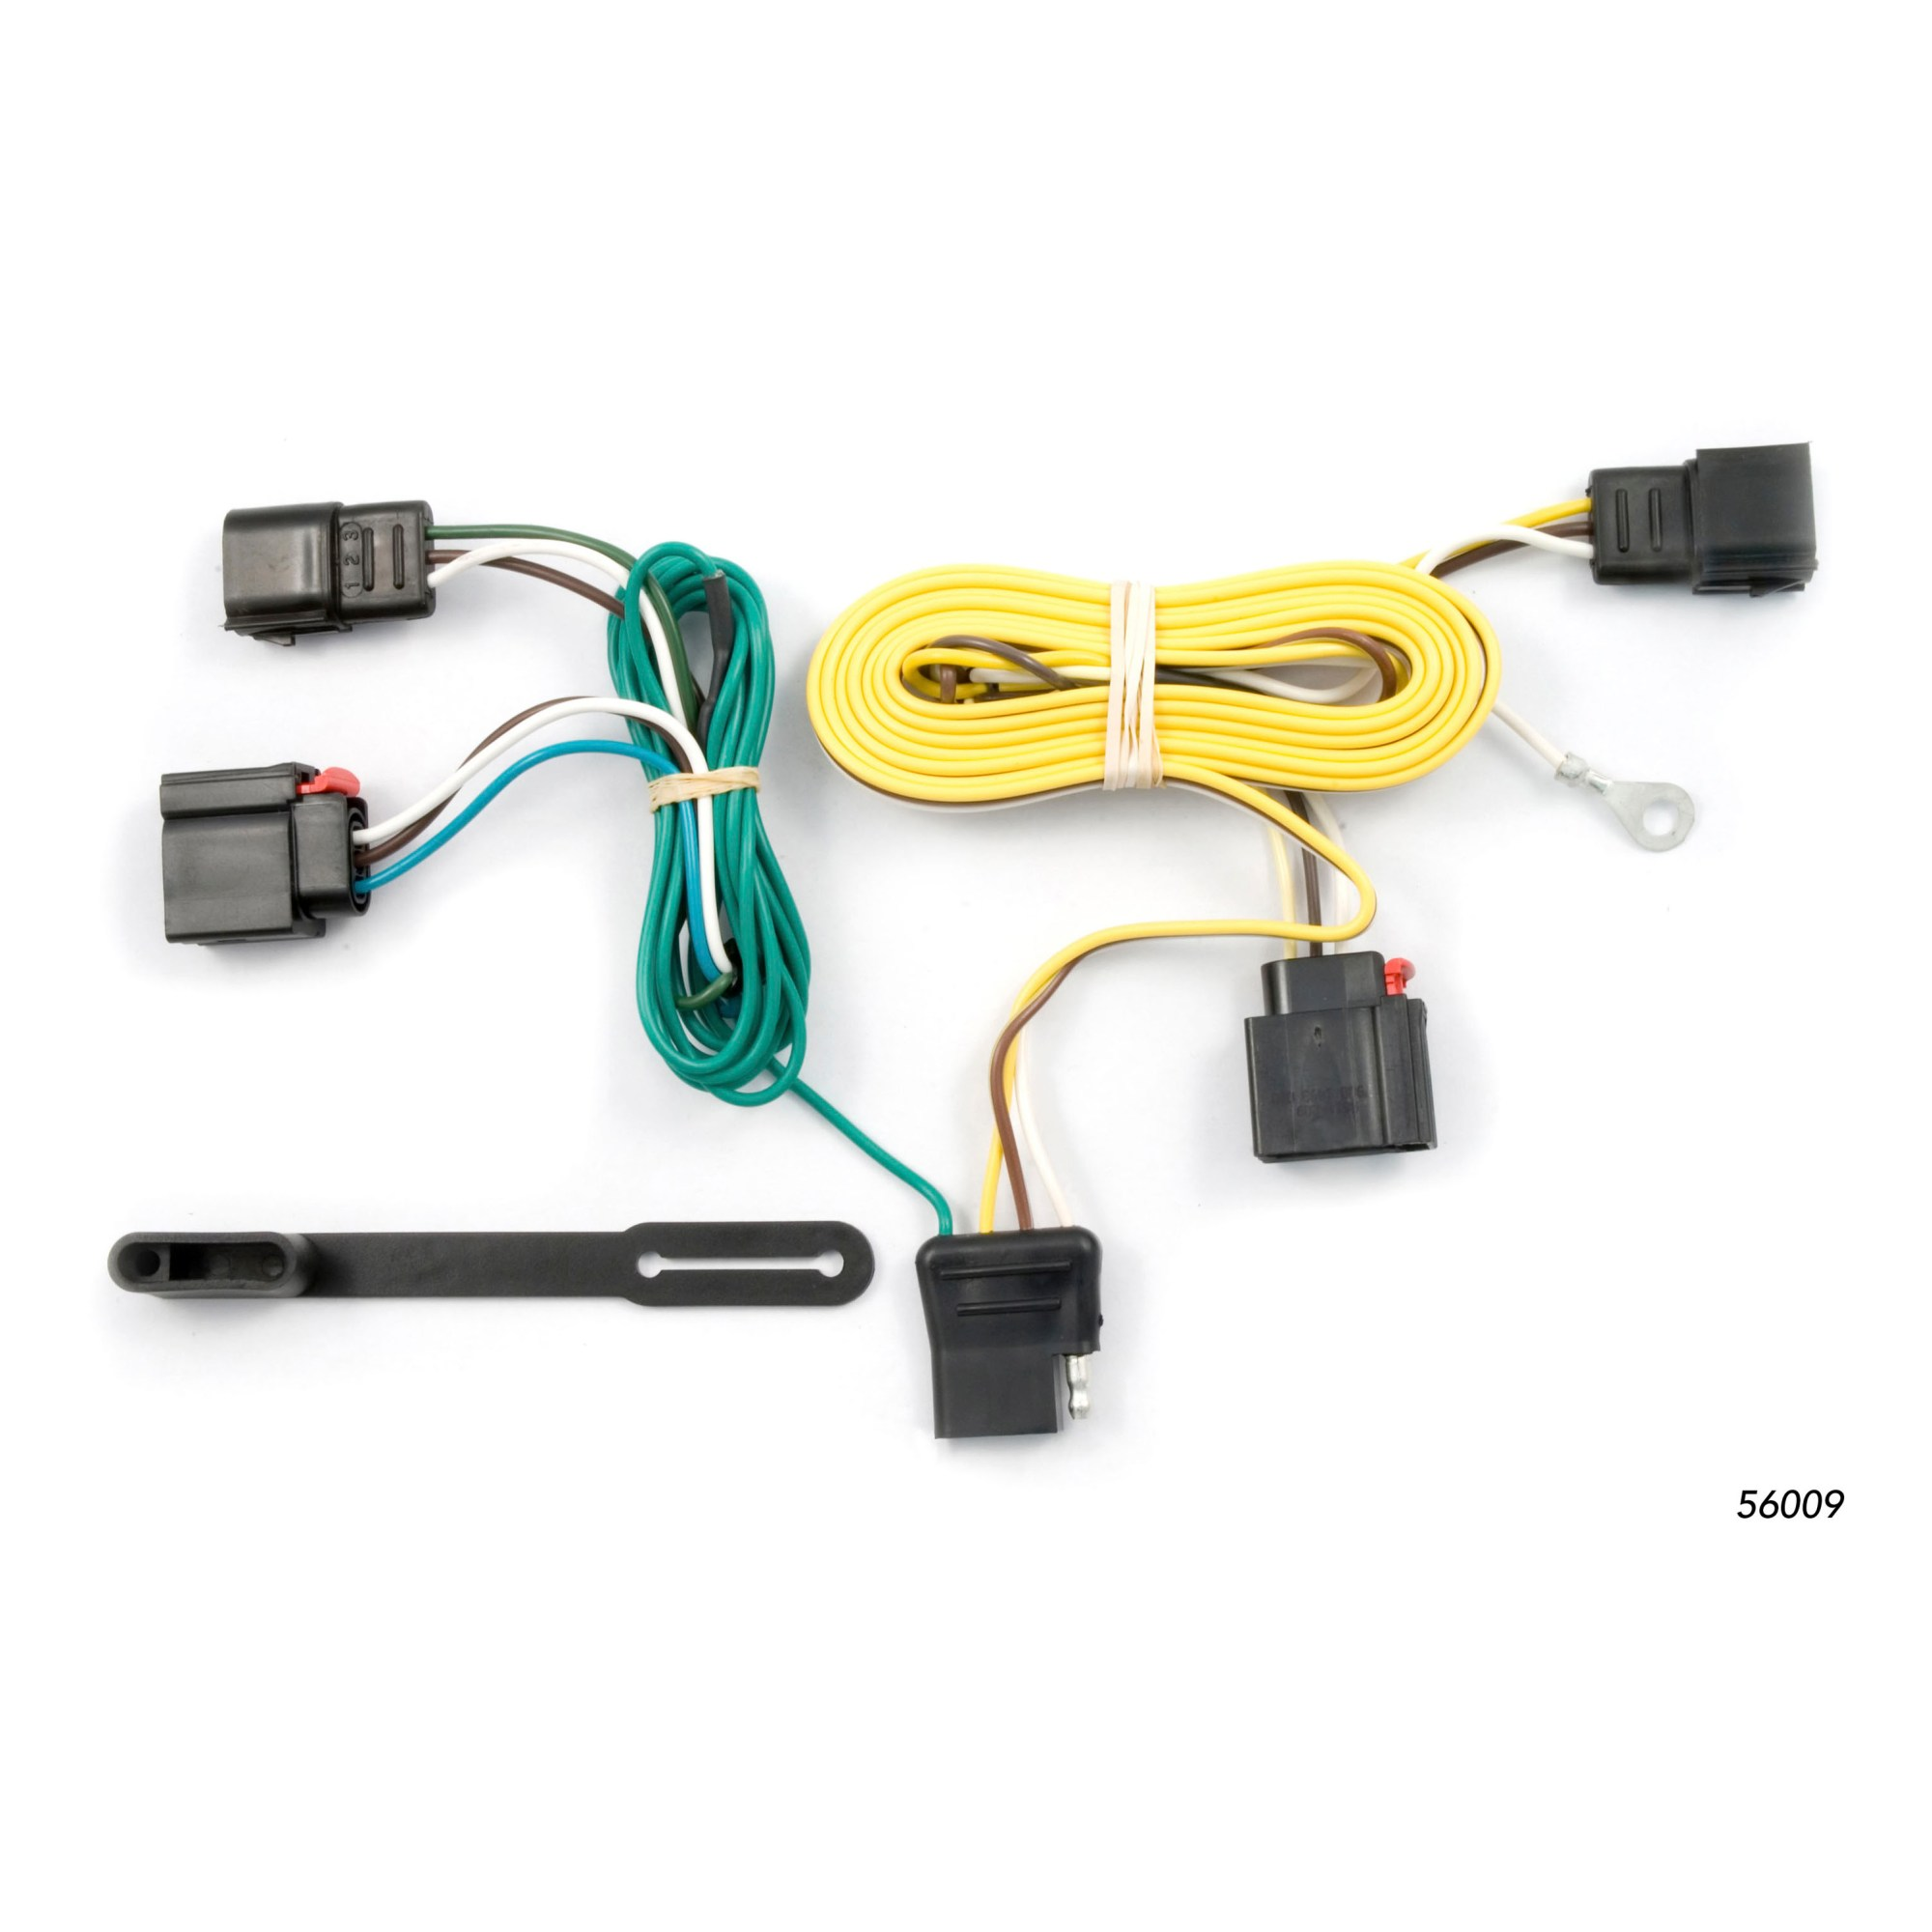 hight resolution of curt vehicle to trailer wiring harness 56009 for 07 13 jeep grand cherokee